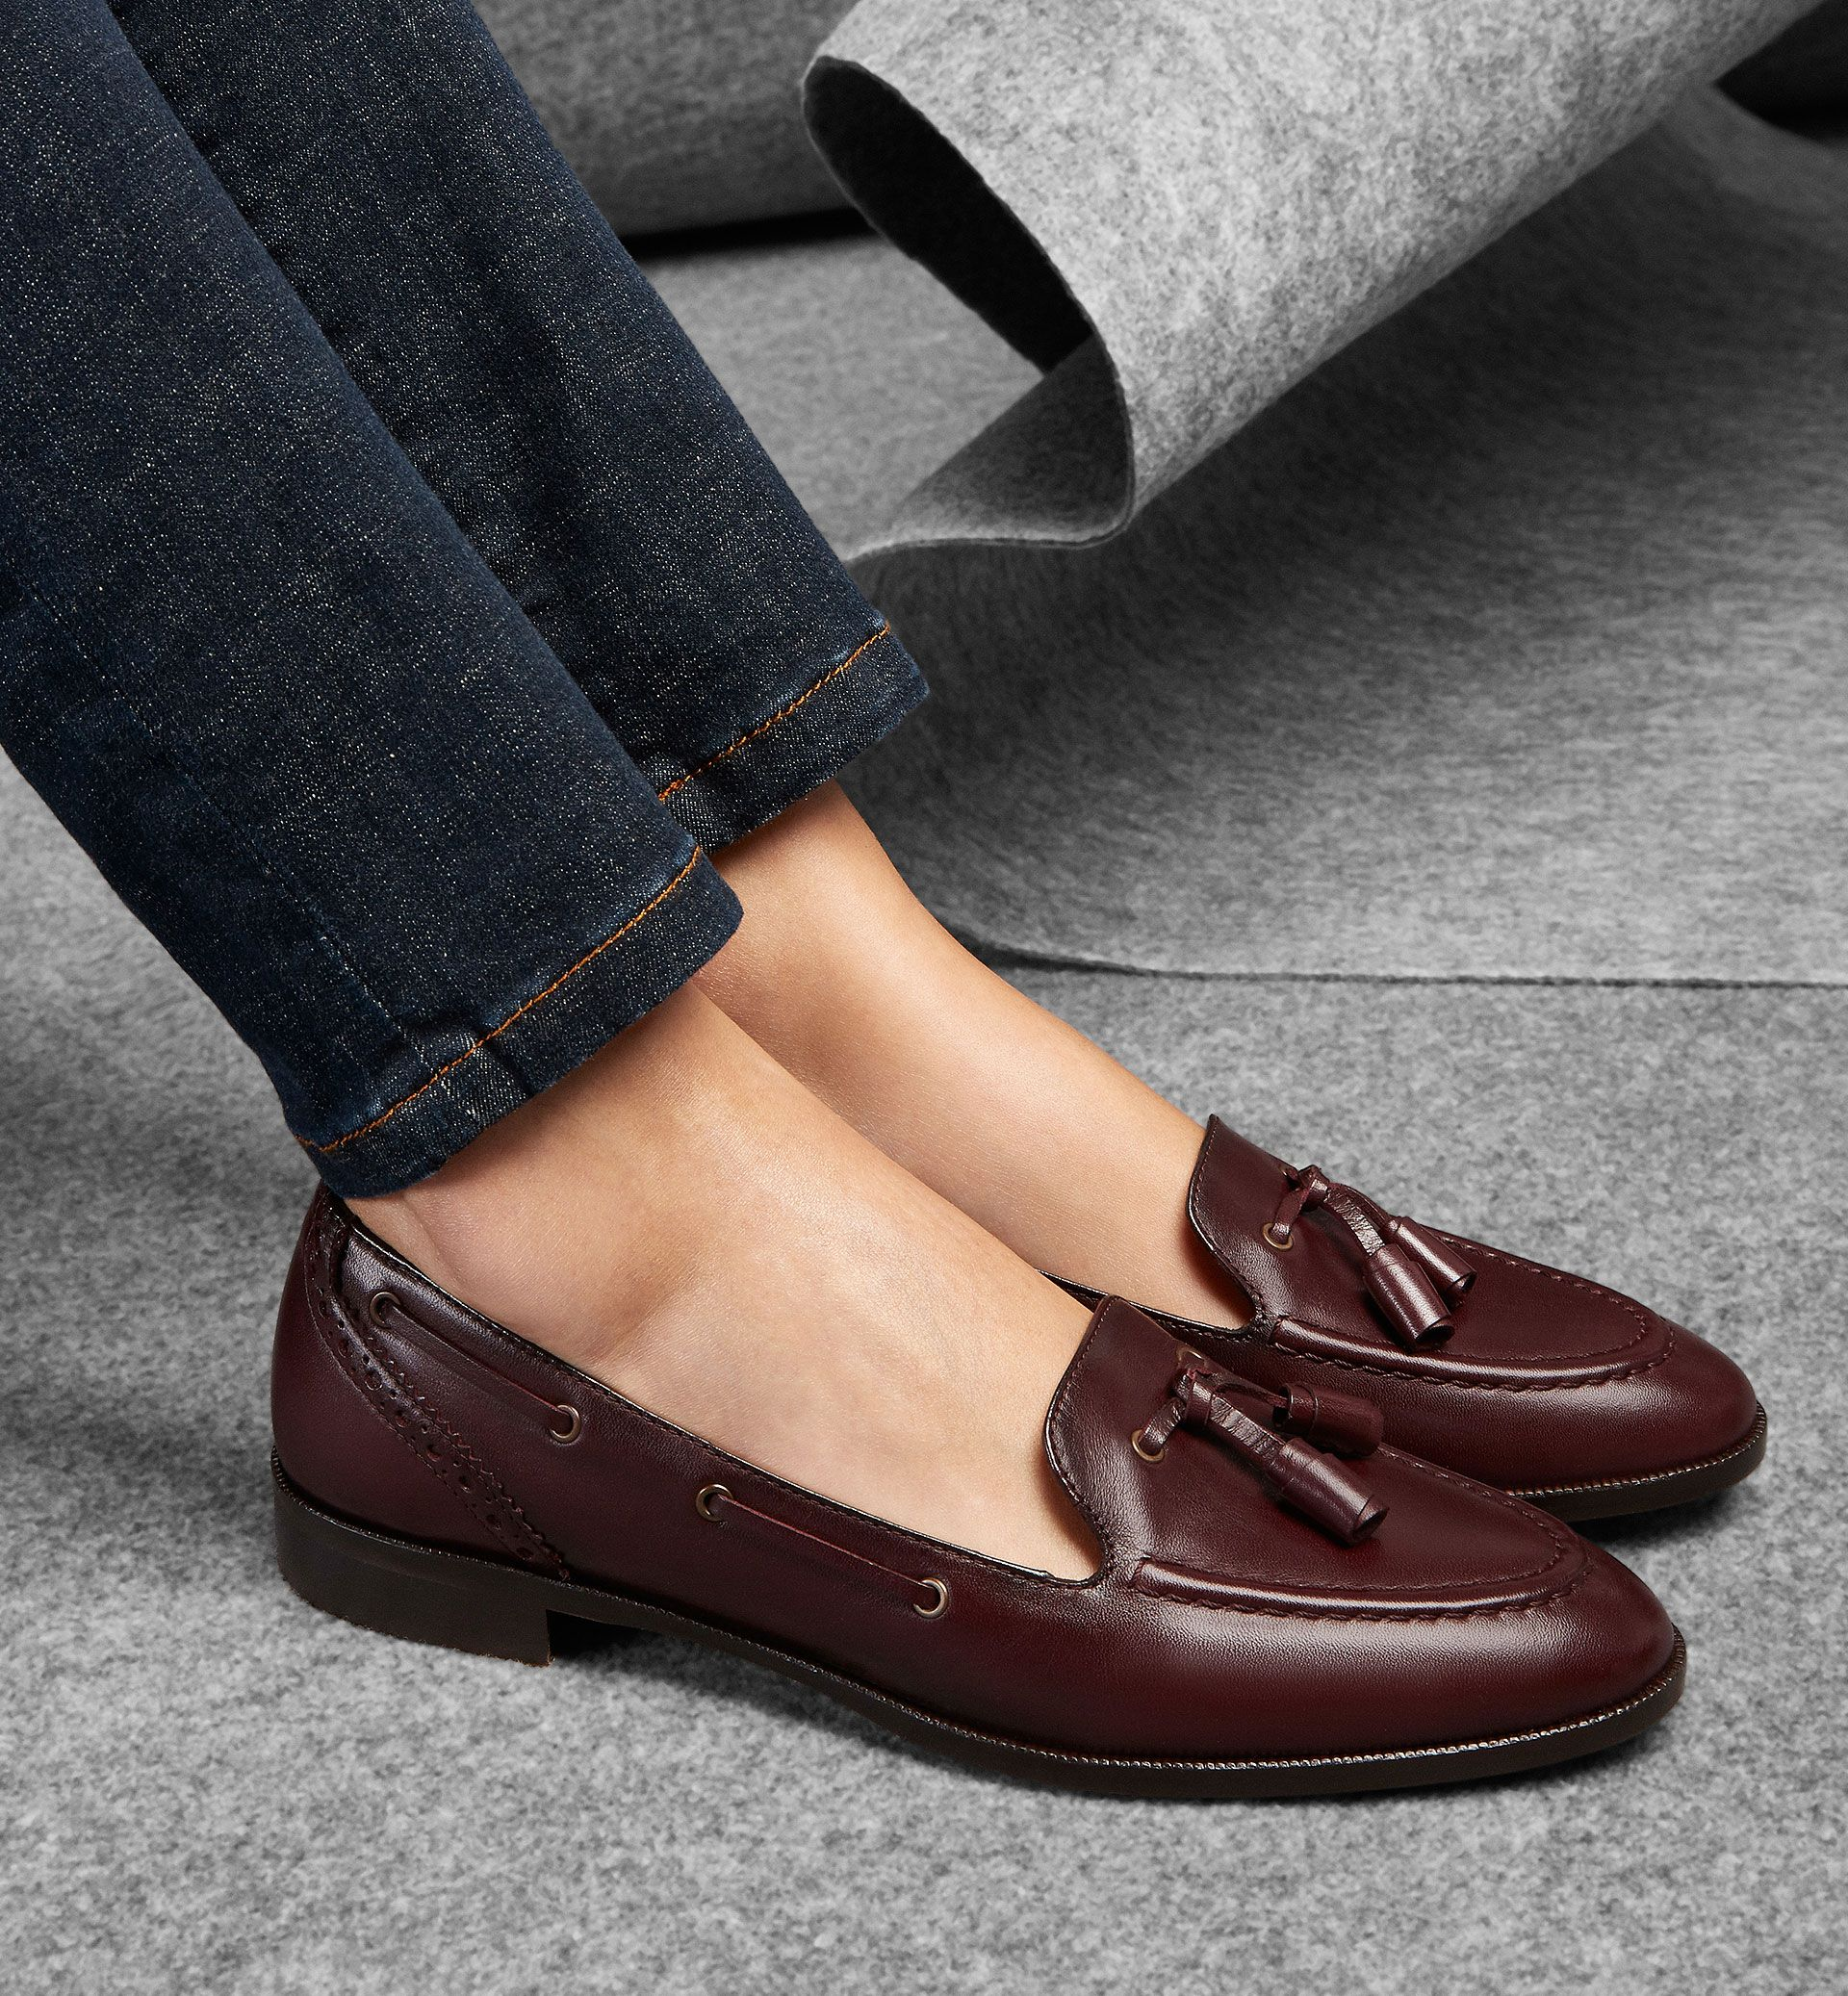 BURGUNDY TASSEL LOAFERS